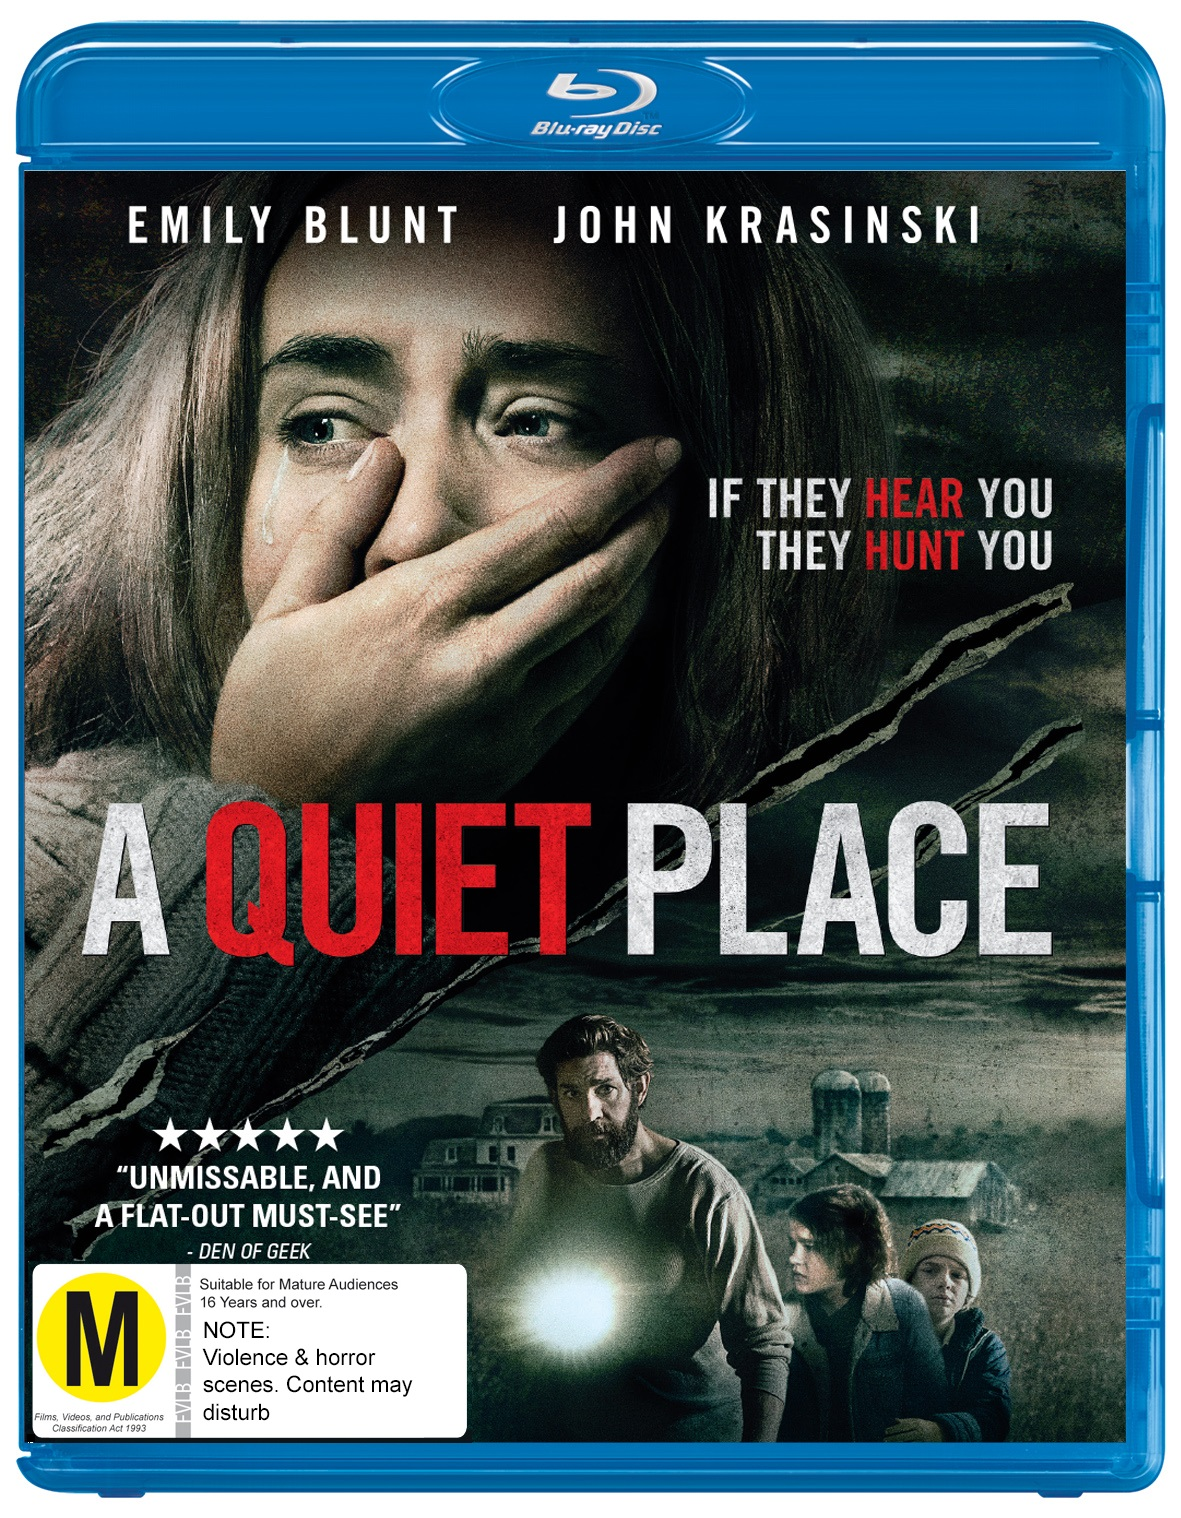 At Darren's World of Entertainment: Win A Quiet Place on Blu-Ray